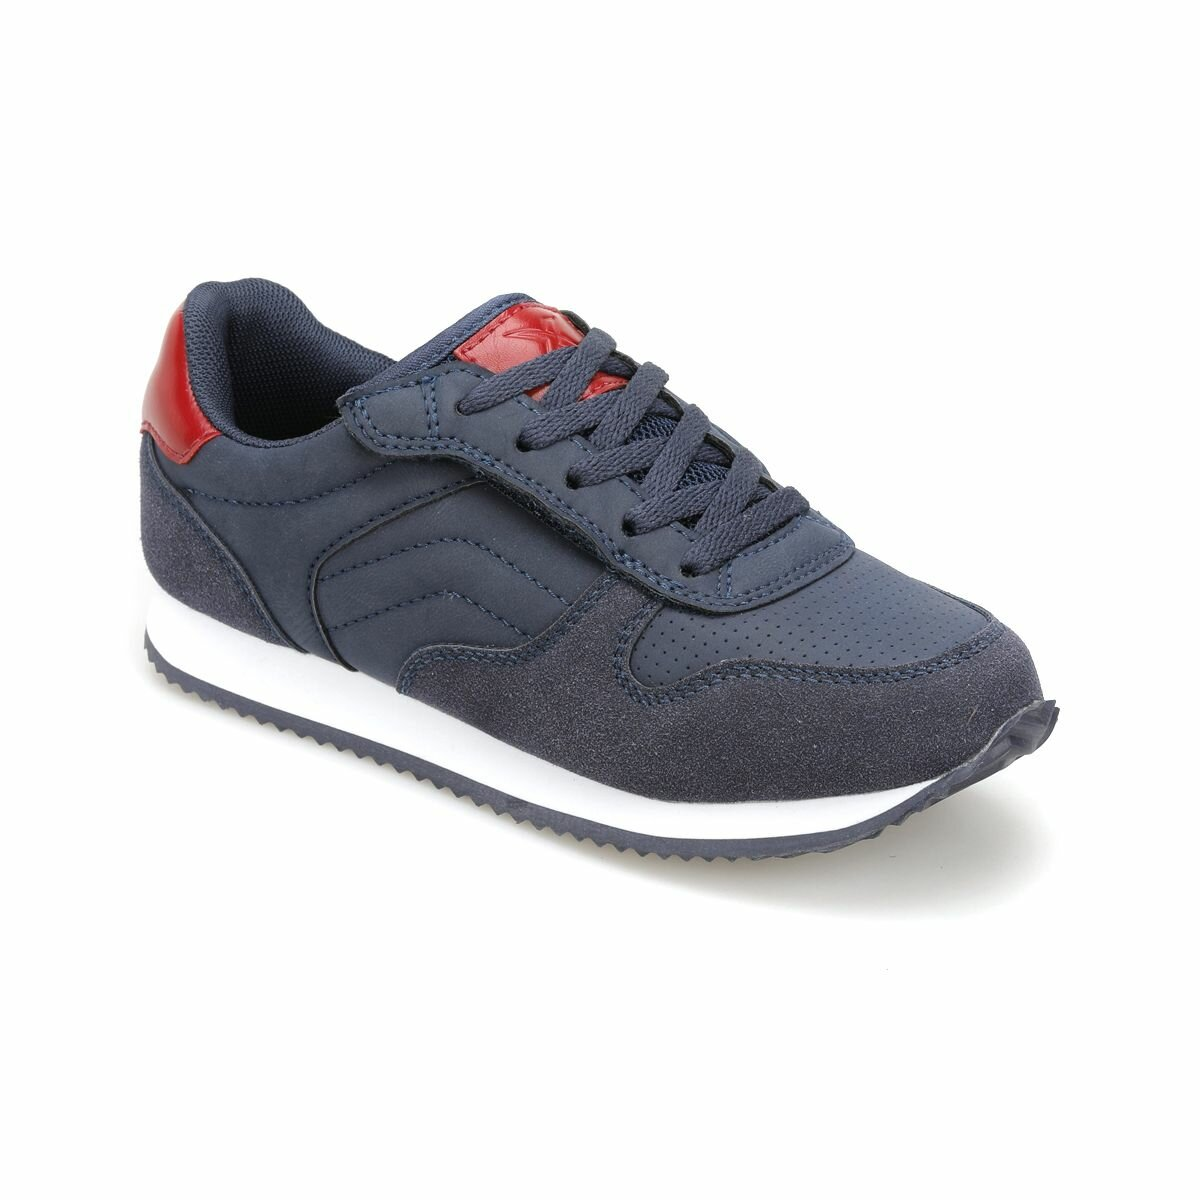 FLO RIPPER Navy Blue Male Child Sports Shoes KINETIX